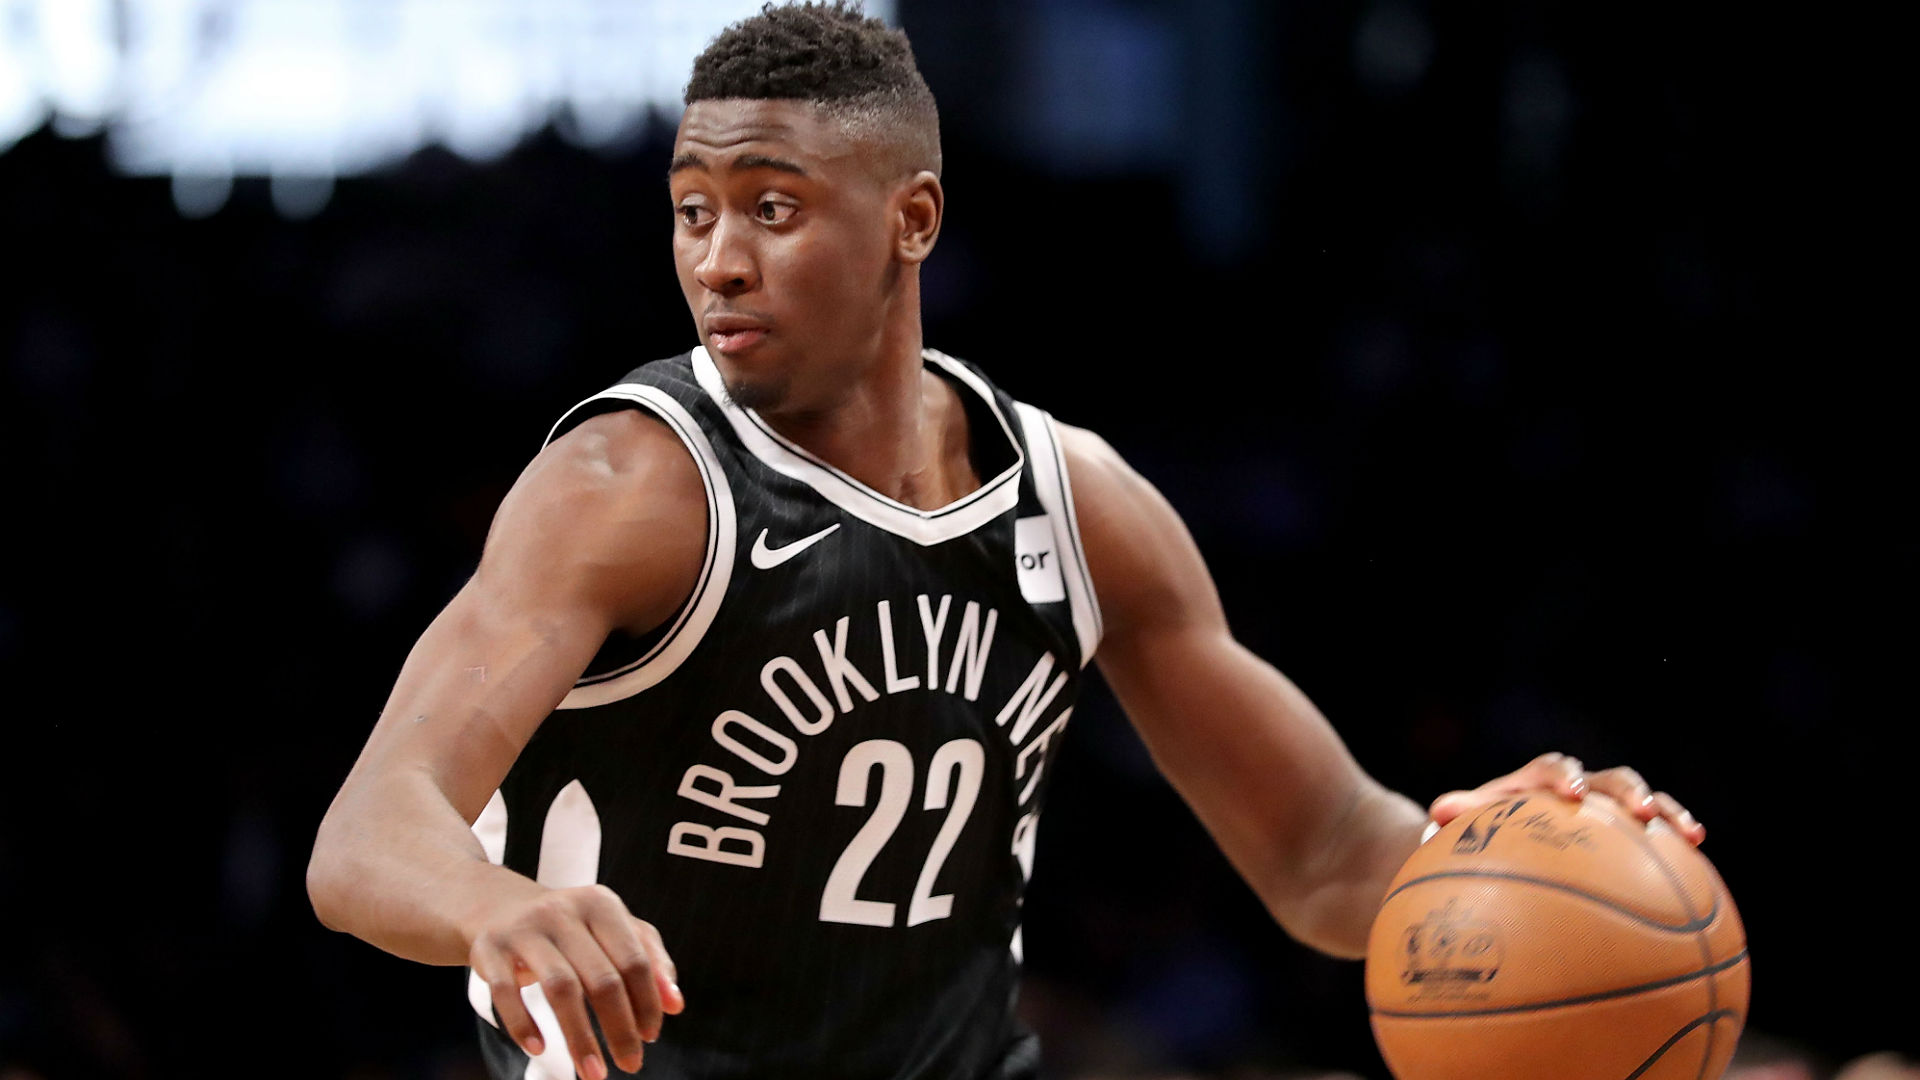 Nets' Cavis Levert Suffers Gruesome Season-Ending Leg Injury — GRAPHIC